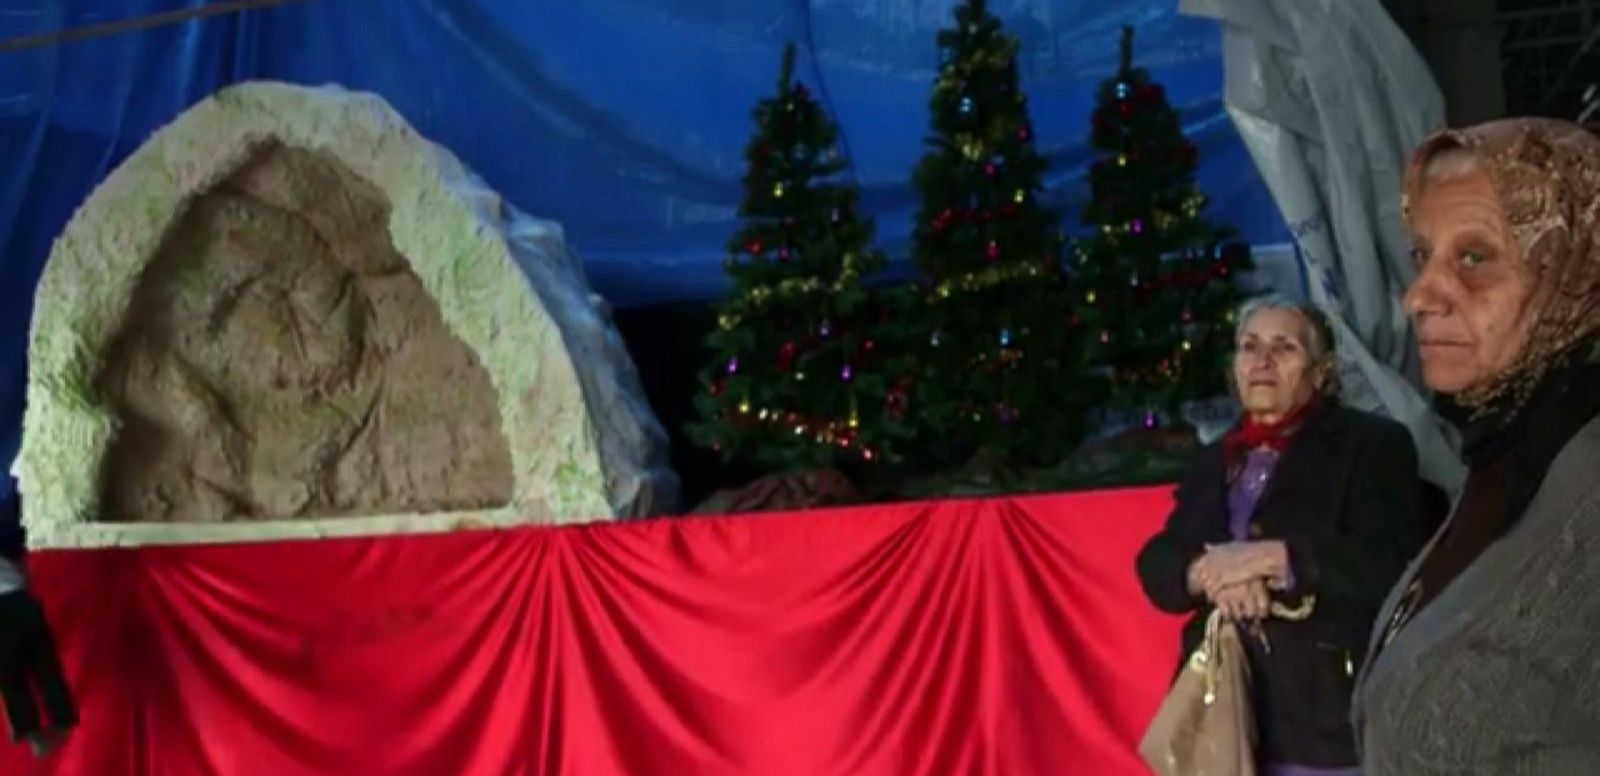 VIDEO: Christians living at the unfinished shopping mall in Erbil have built a makeshift nativity scene.